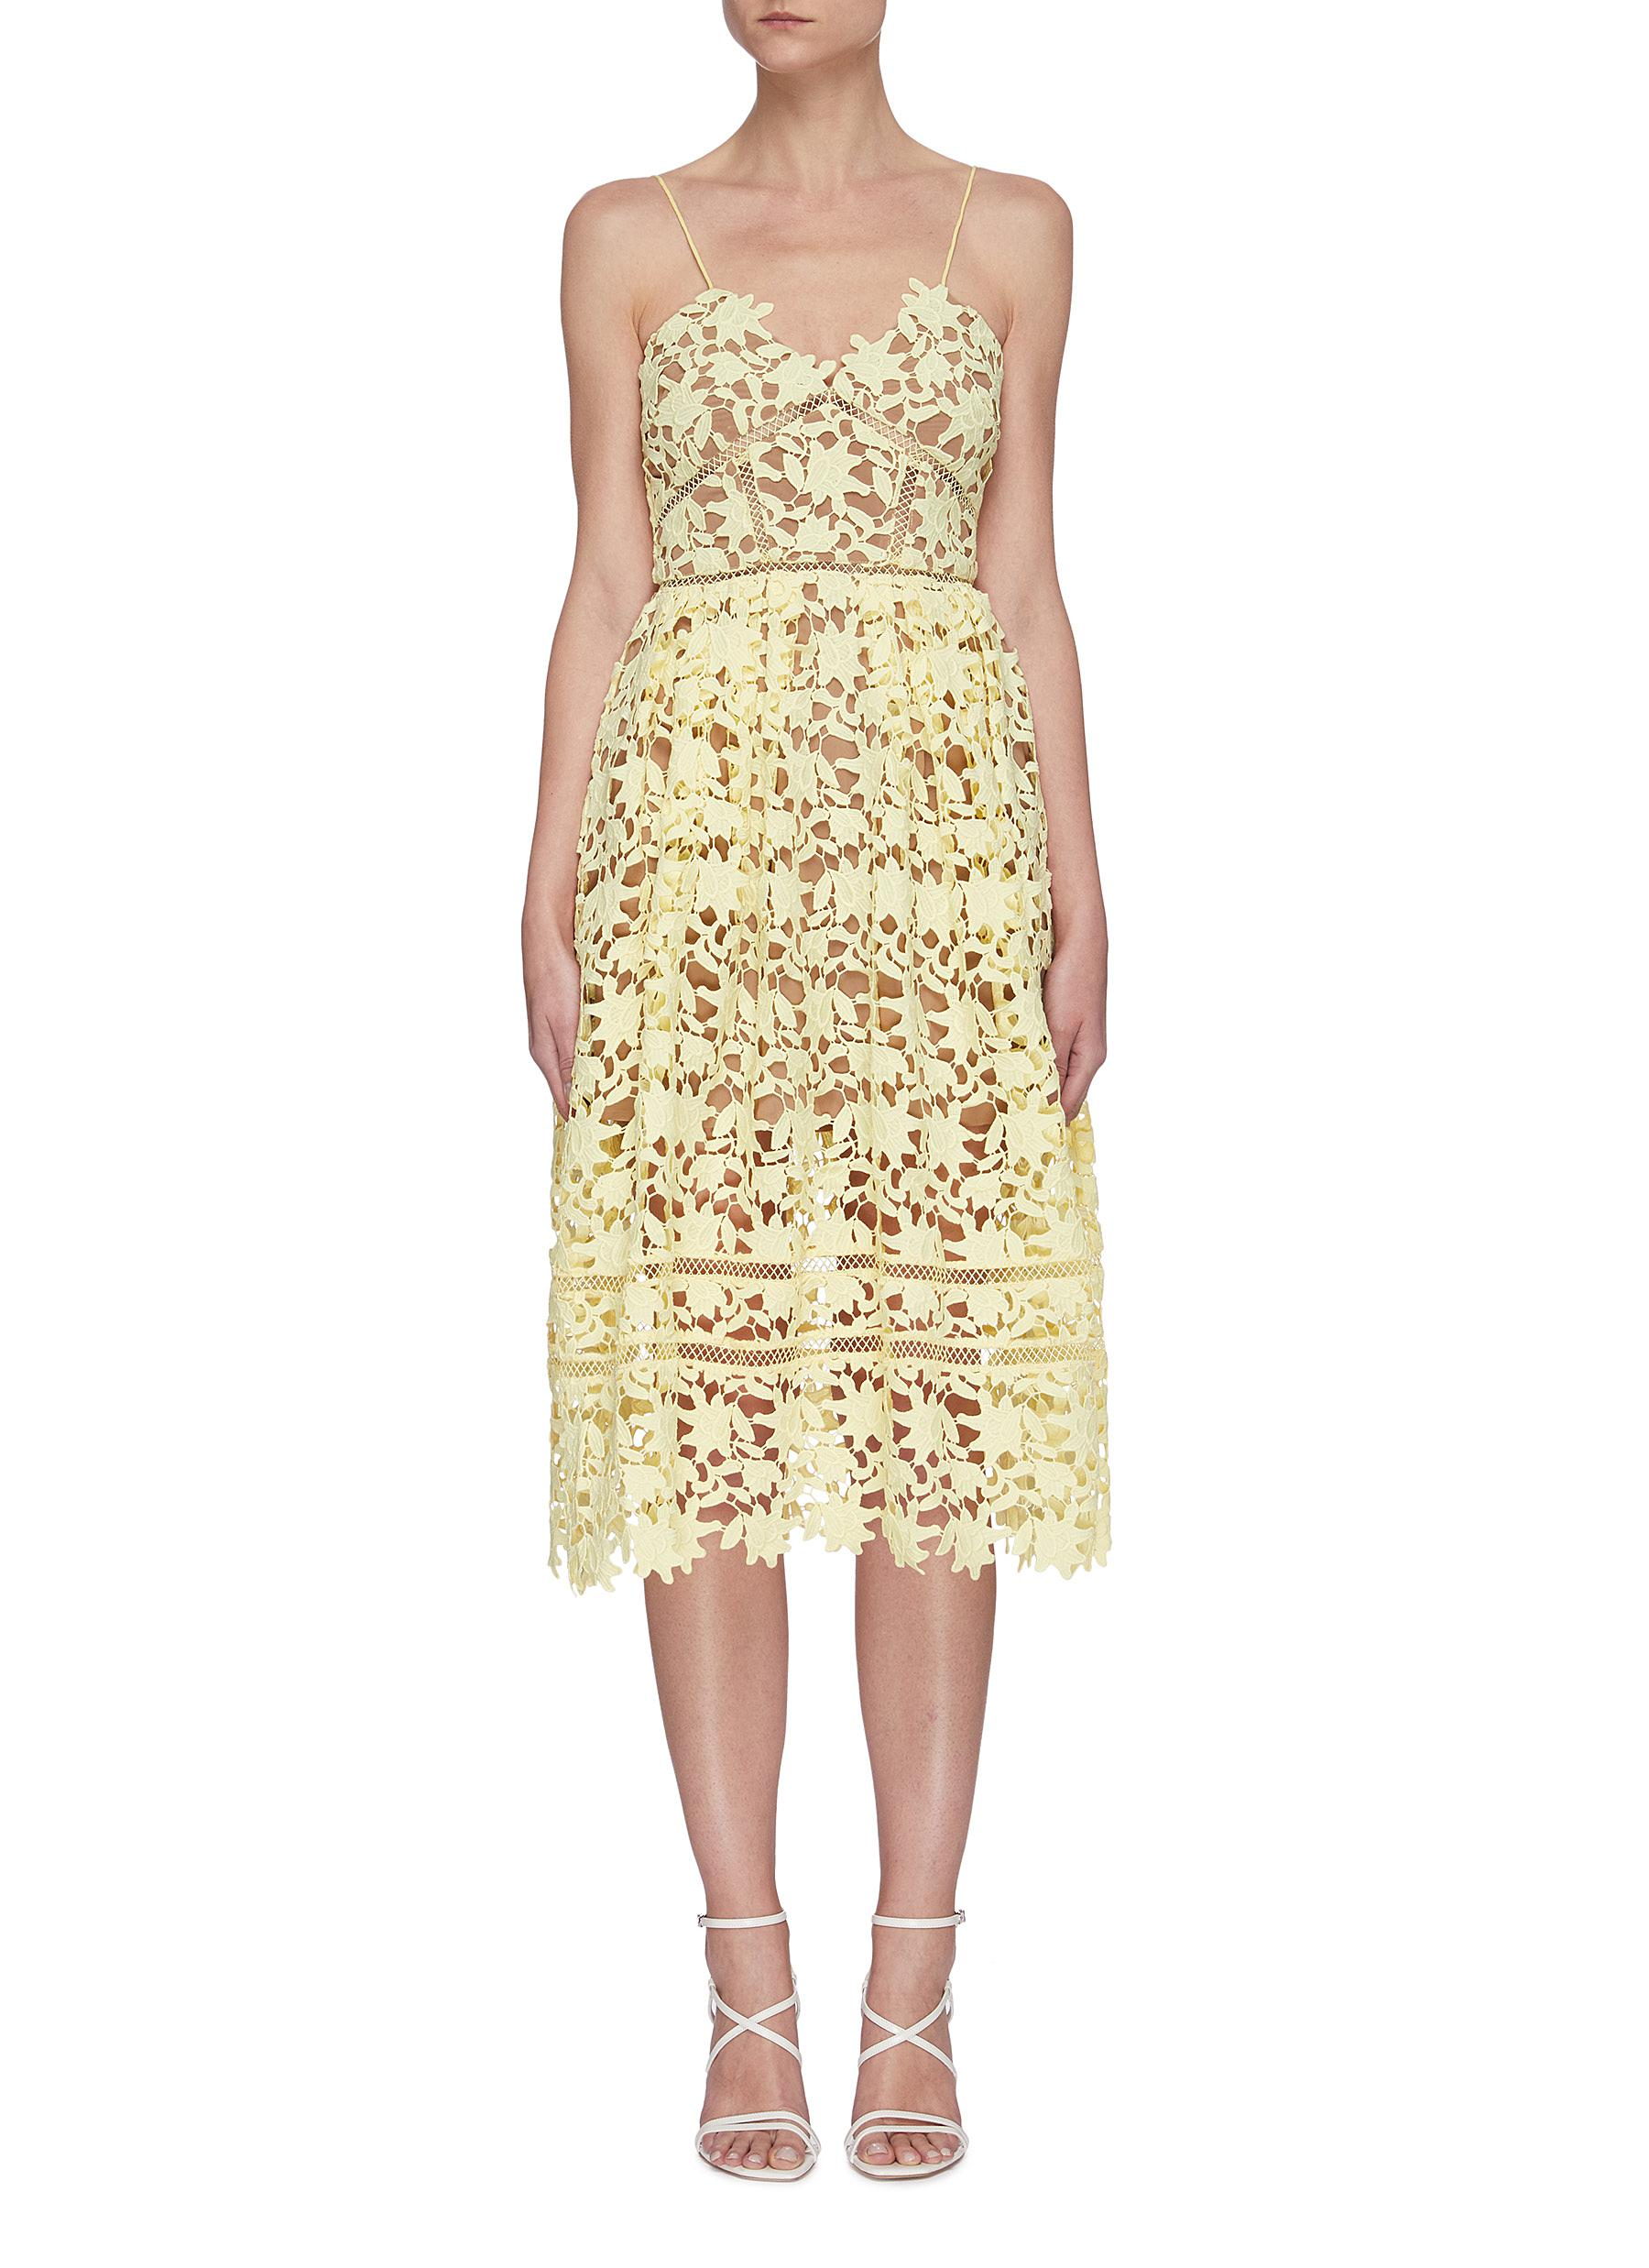 Buy Self-Portrait Dresses 'Azaelea' floral lace dress